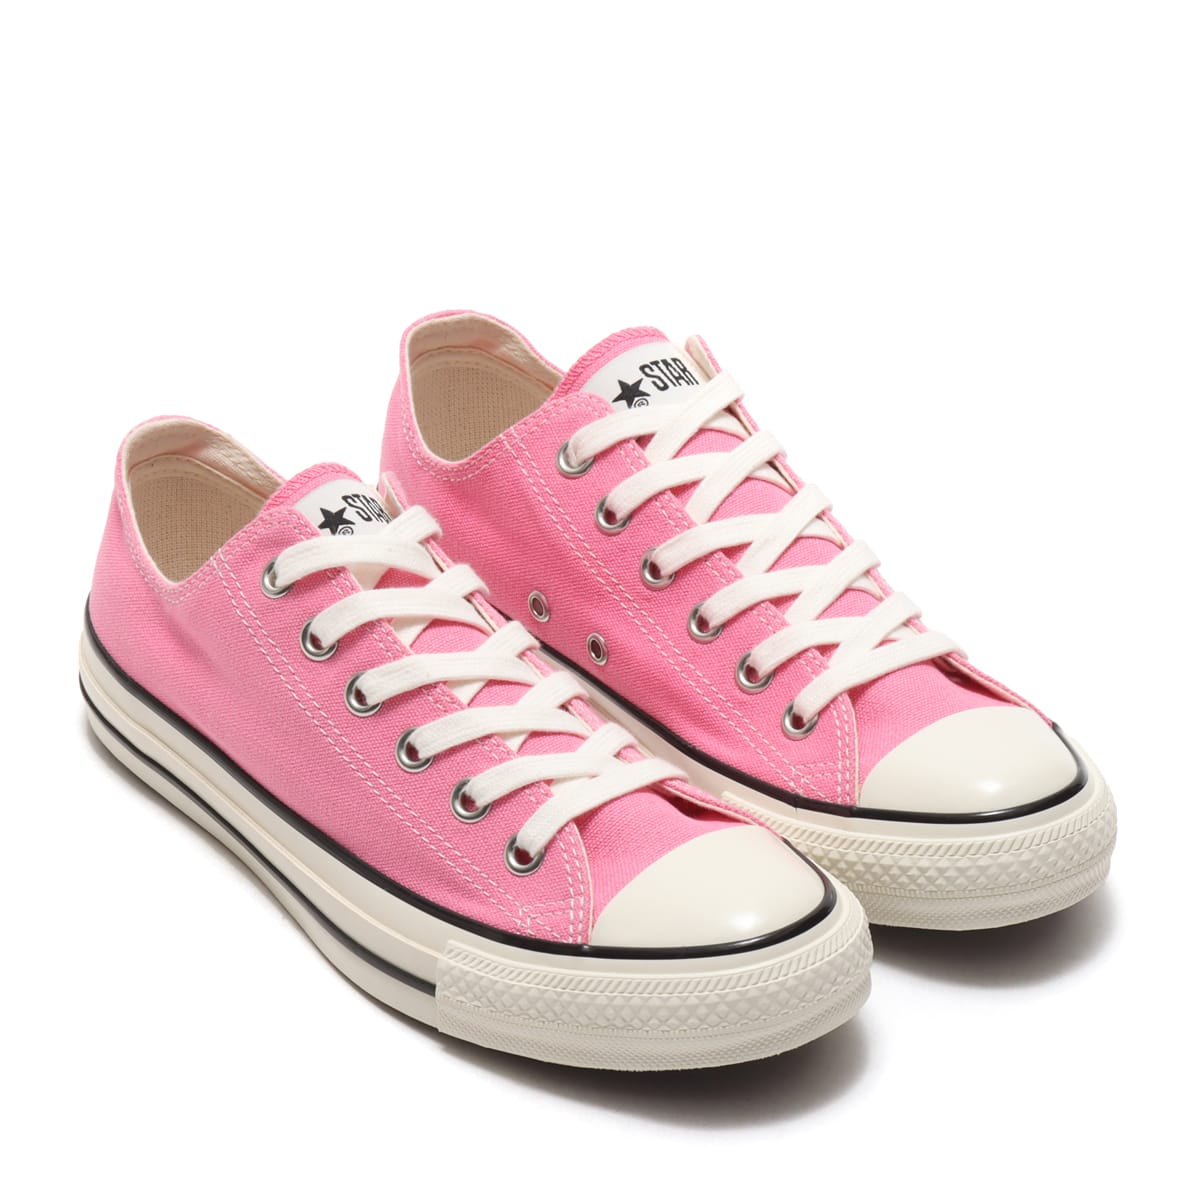 CONVERSE ALL STAR US COLORS OX PINK 21SS-I_photo_large